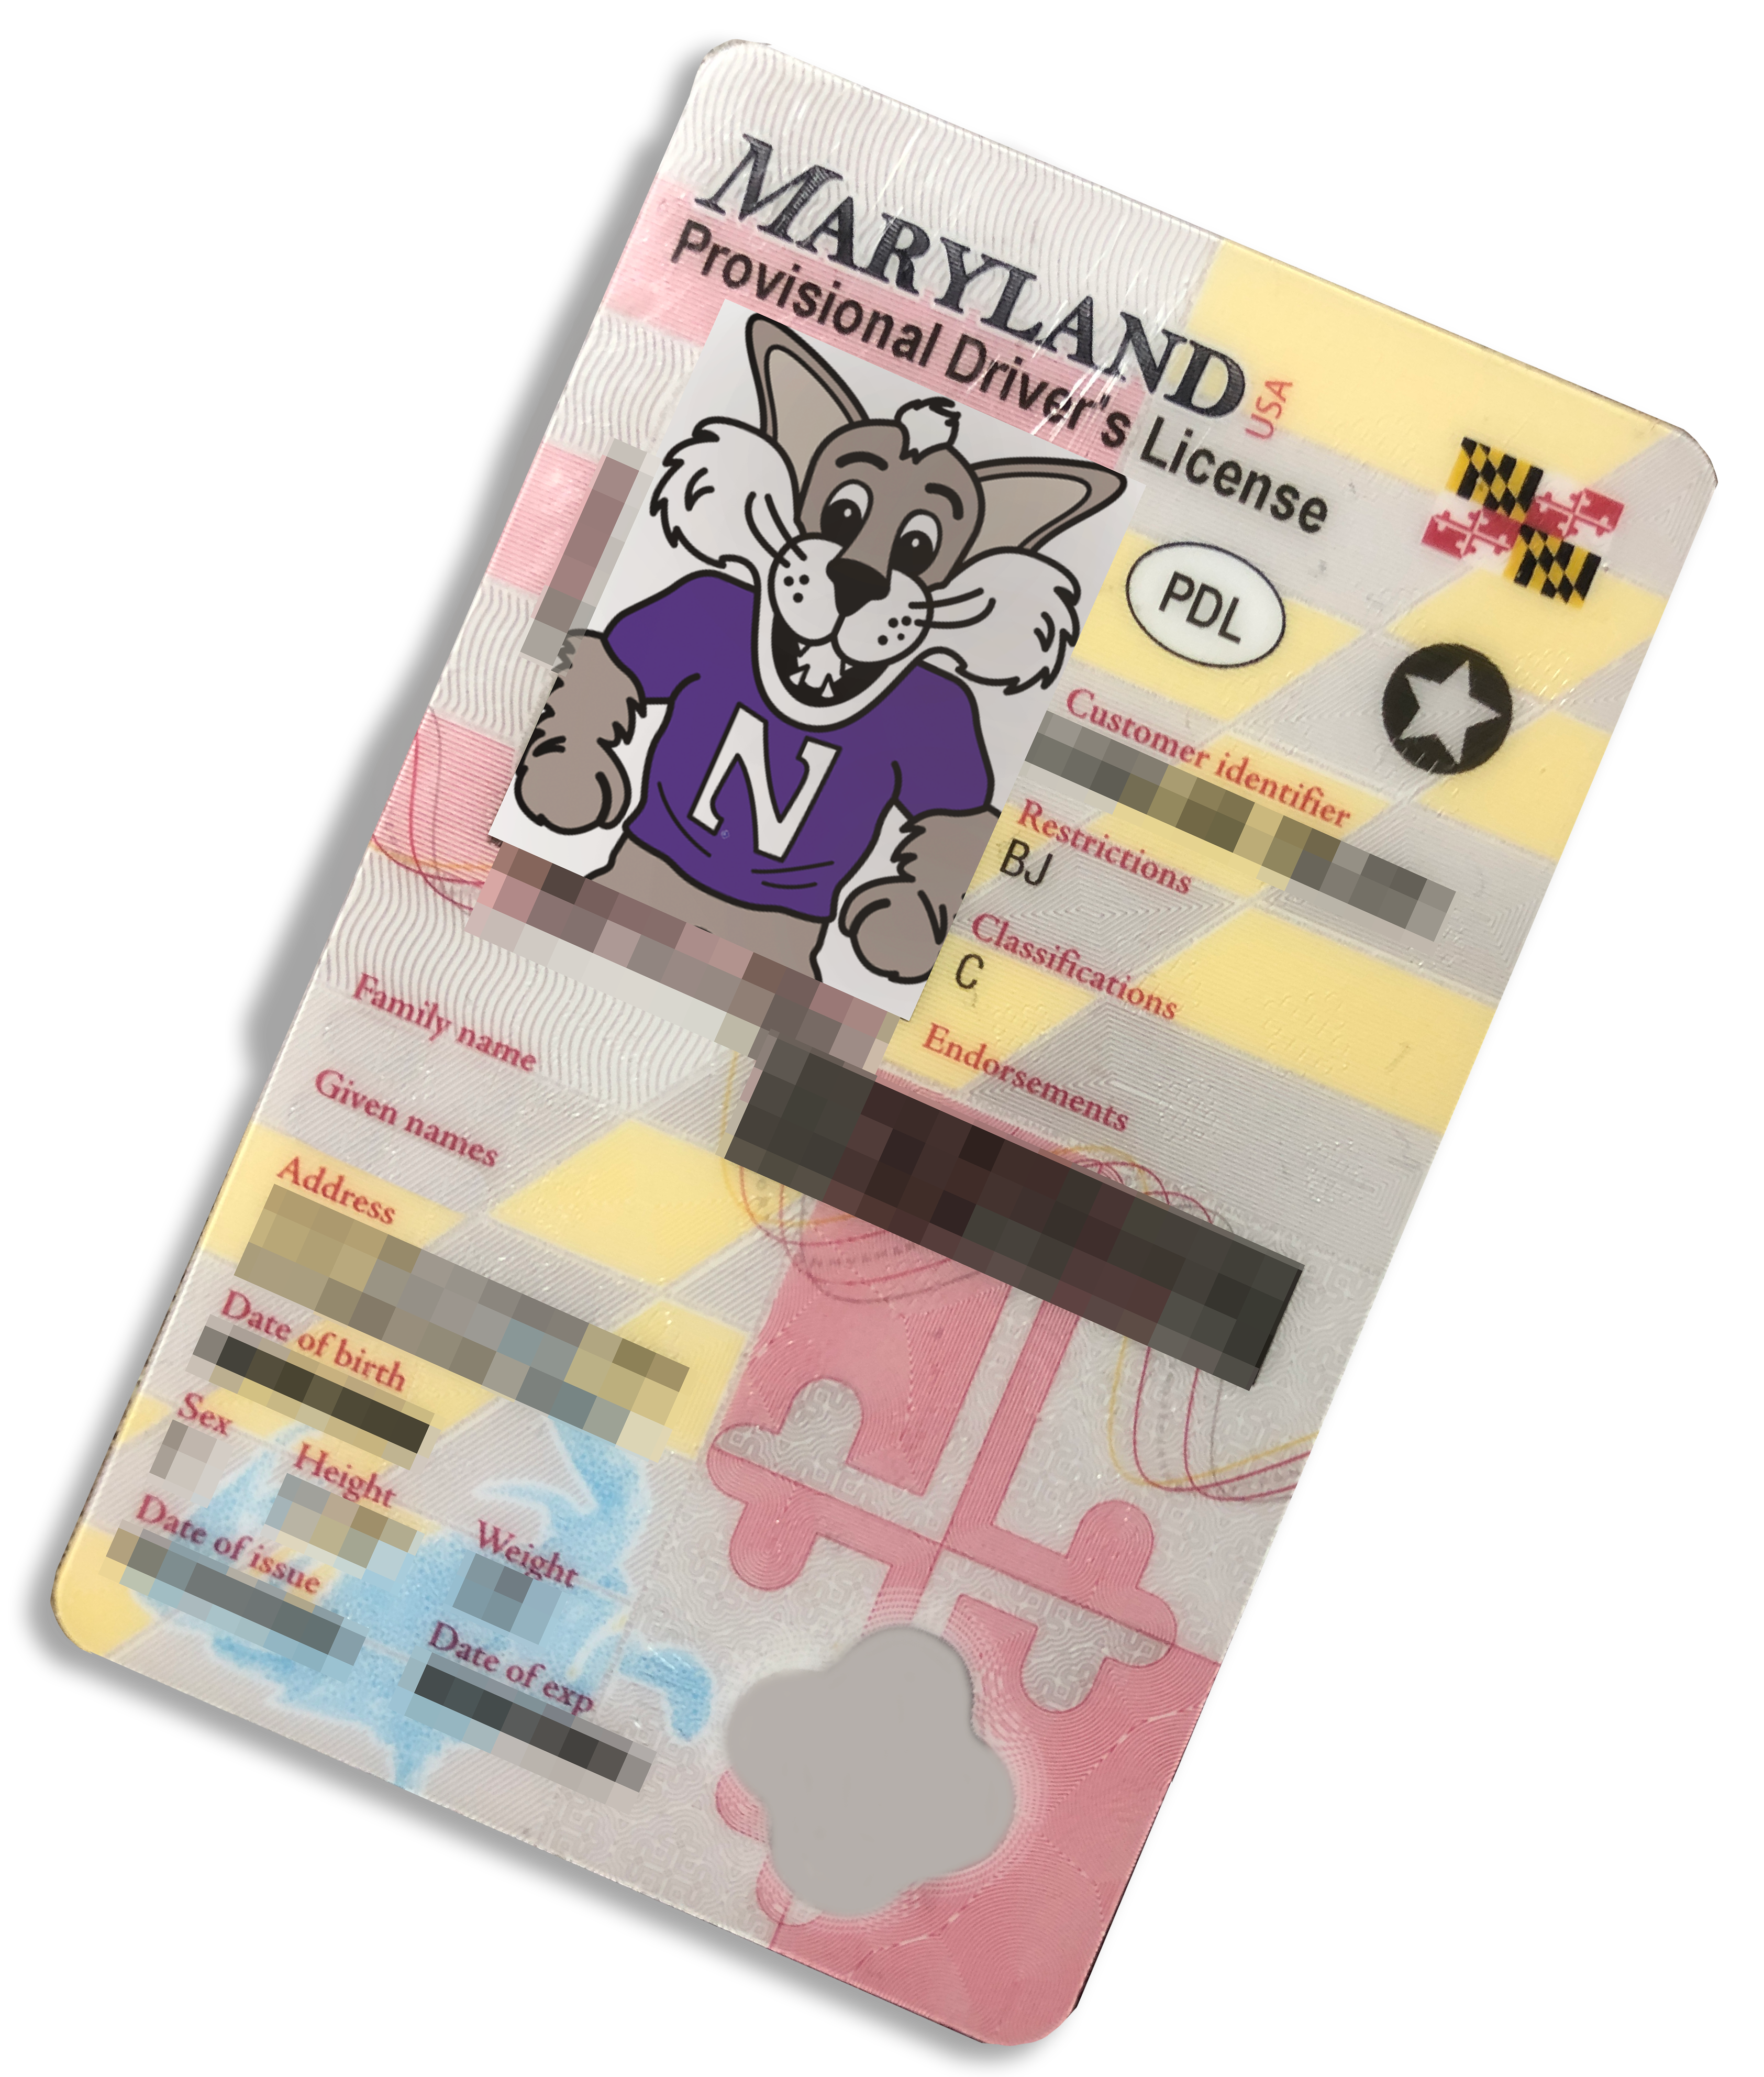 A Maryland driver's license with Willy the Wildcat's photo on it